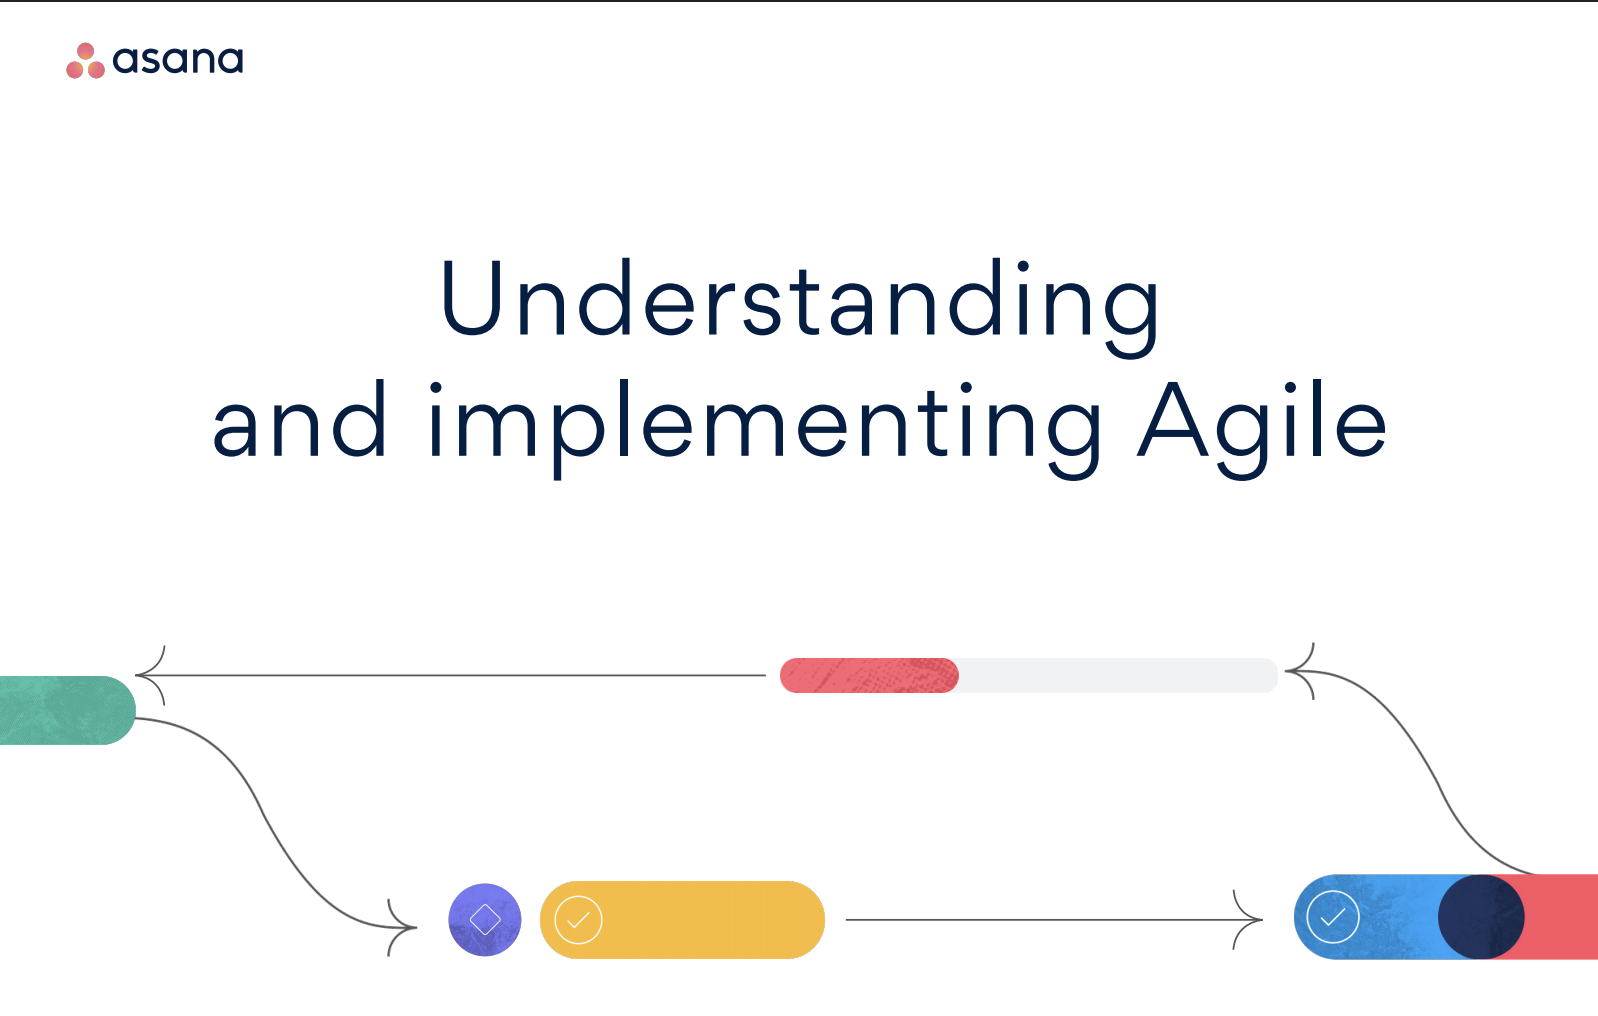 Asana - Understanding and implementing Agile